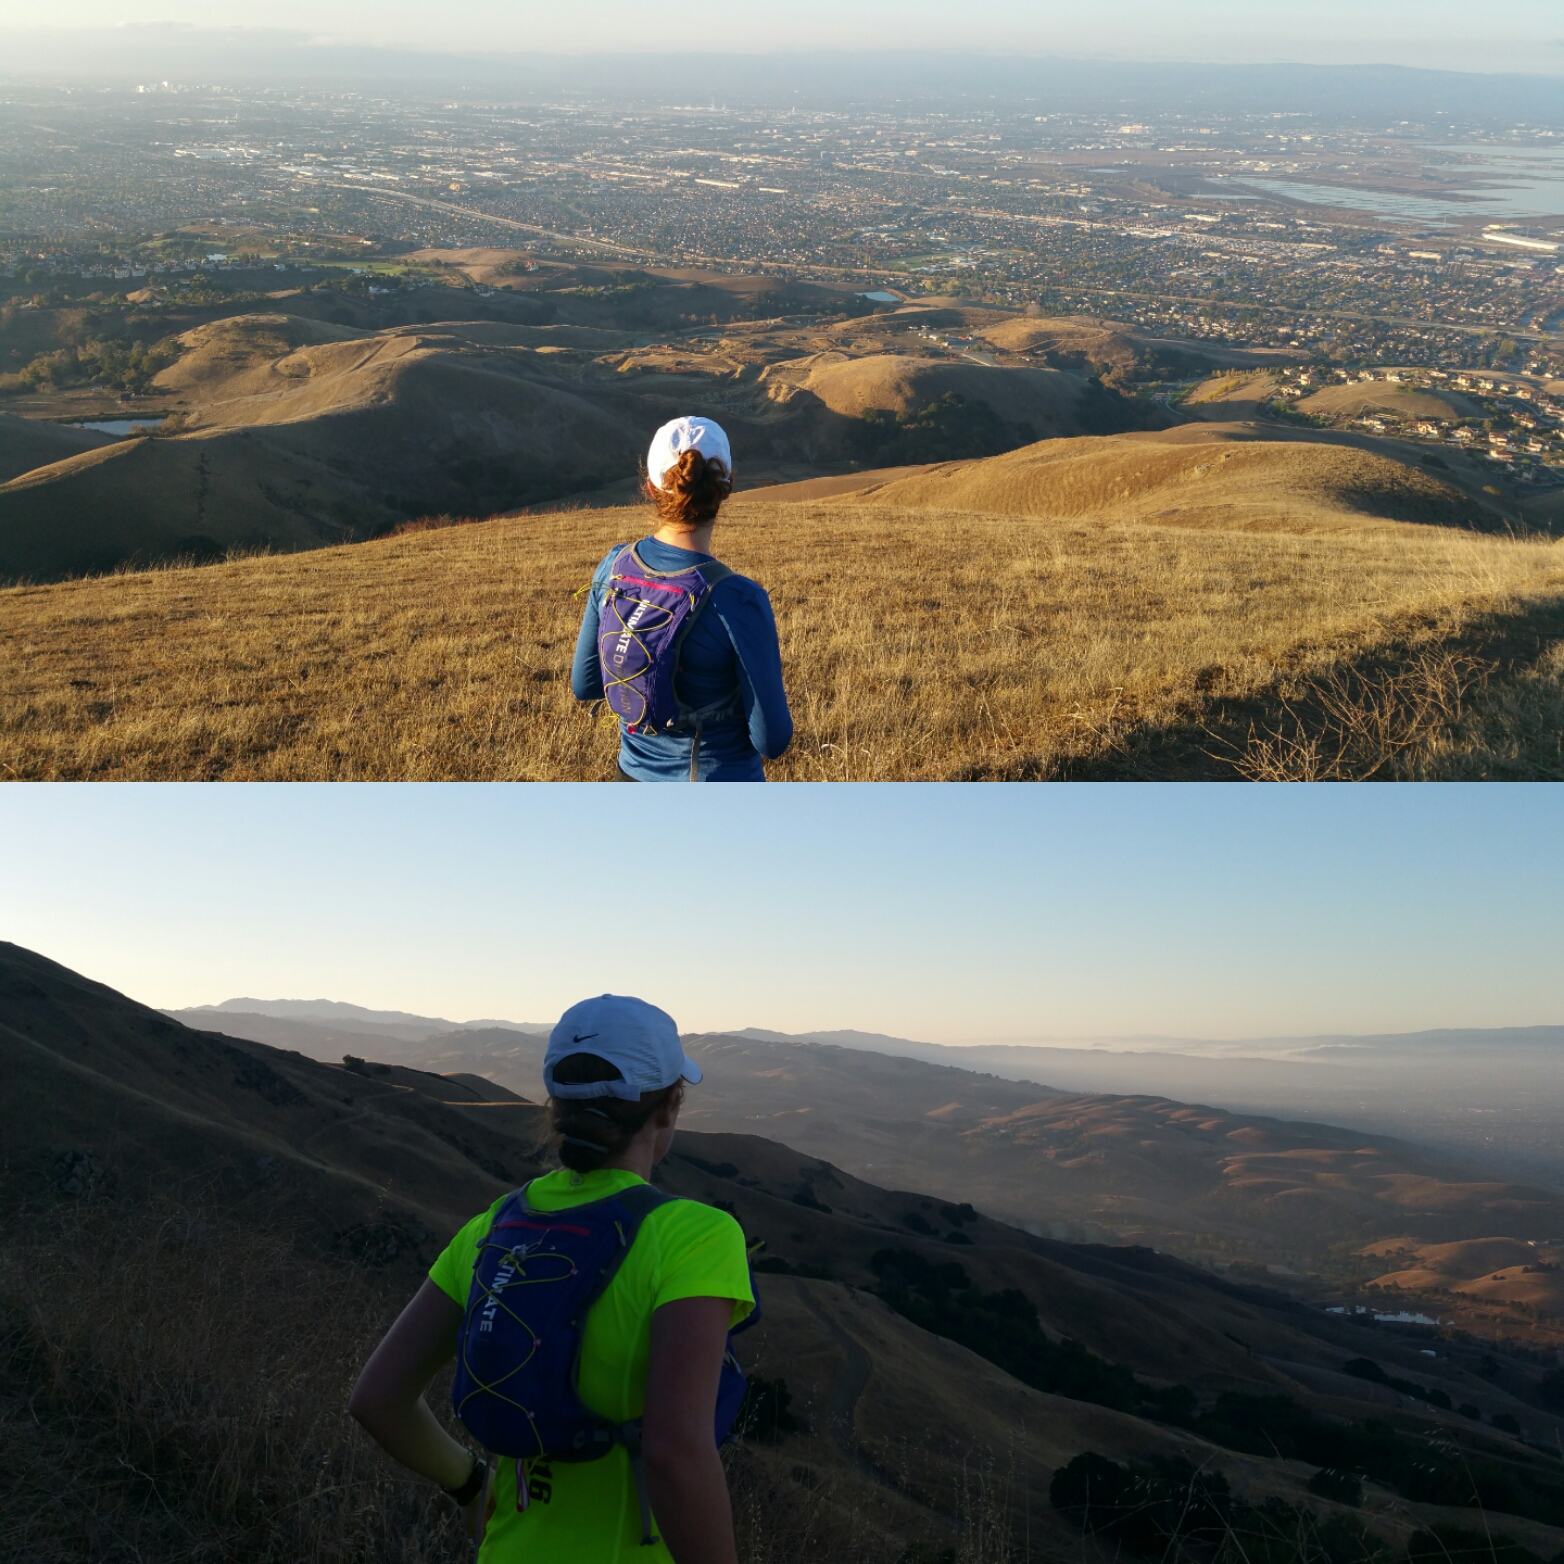 "probably the most challenging run I've done since living here is just down the street from me. top: Nov '14, about a month or so before I got pregnant (and was in the thick of 50k training); bottom: last weekend, 8 weeks postpartum. Here again, I could talk about how much ""better"" my body was in the top pic, or how much faster I was then, or whatever, buuuuuuuuut no fucks can be given. That my postpartum (x2 now) body can throw down a double-digit run and climb nearly 3,000' through what is practically Everest, as far as I'm concerned, is way more valuable to me these days. [PC: S]"